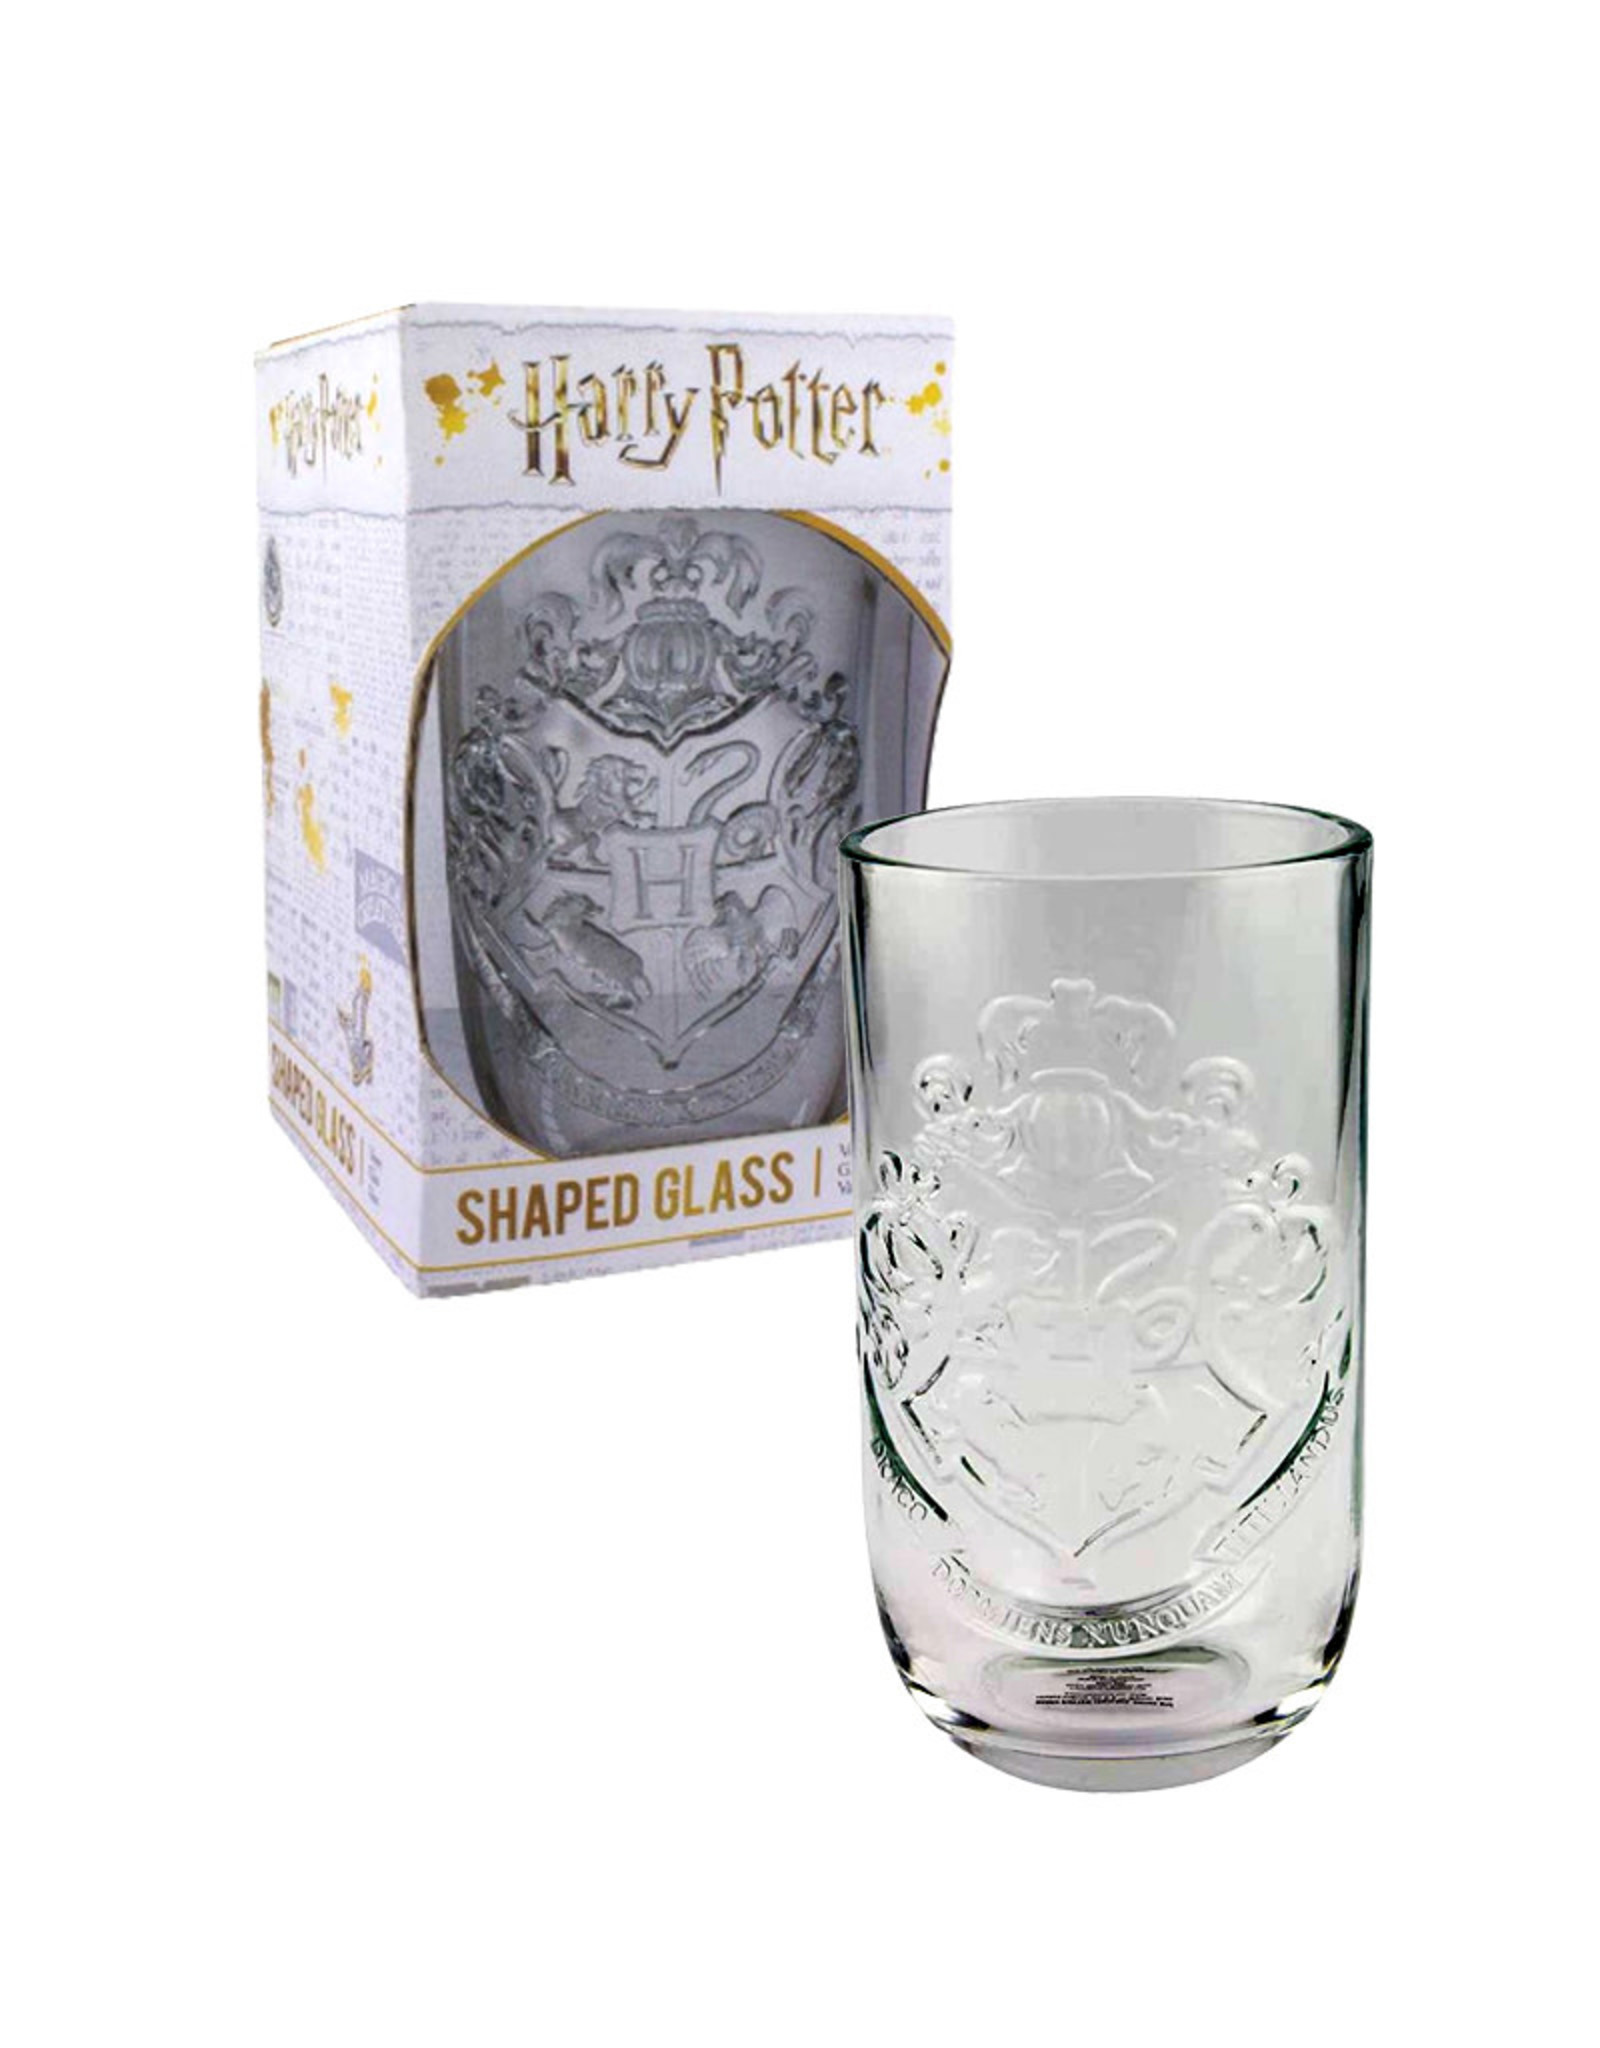 Harry Potter Harry Potter ( Shaped Glass ) Hogwarts